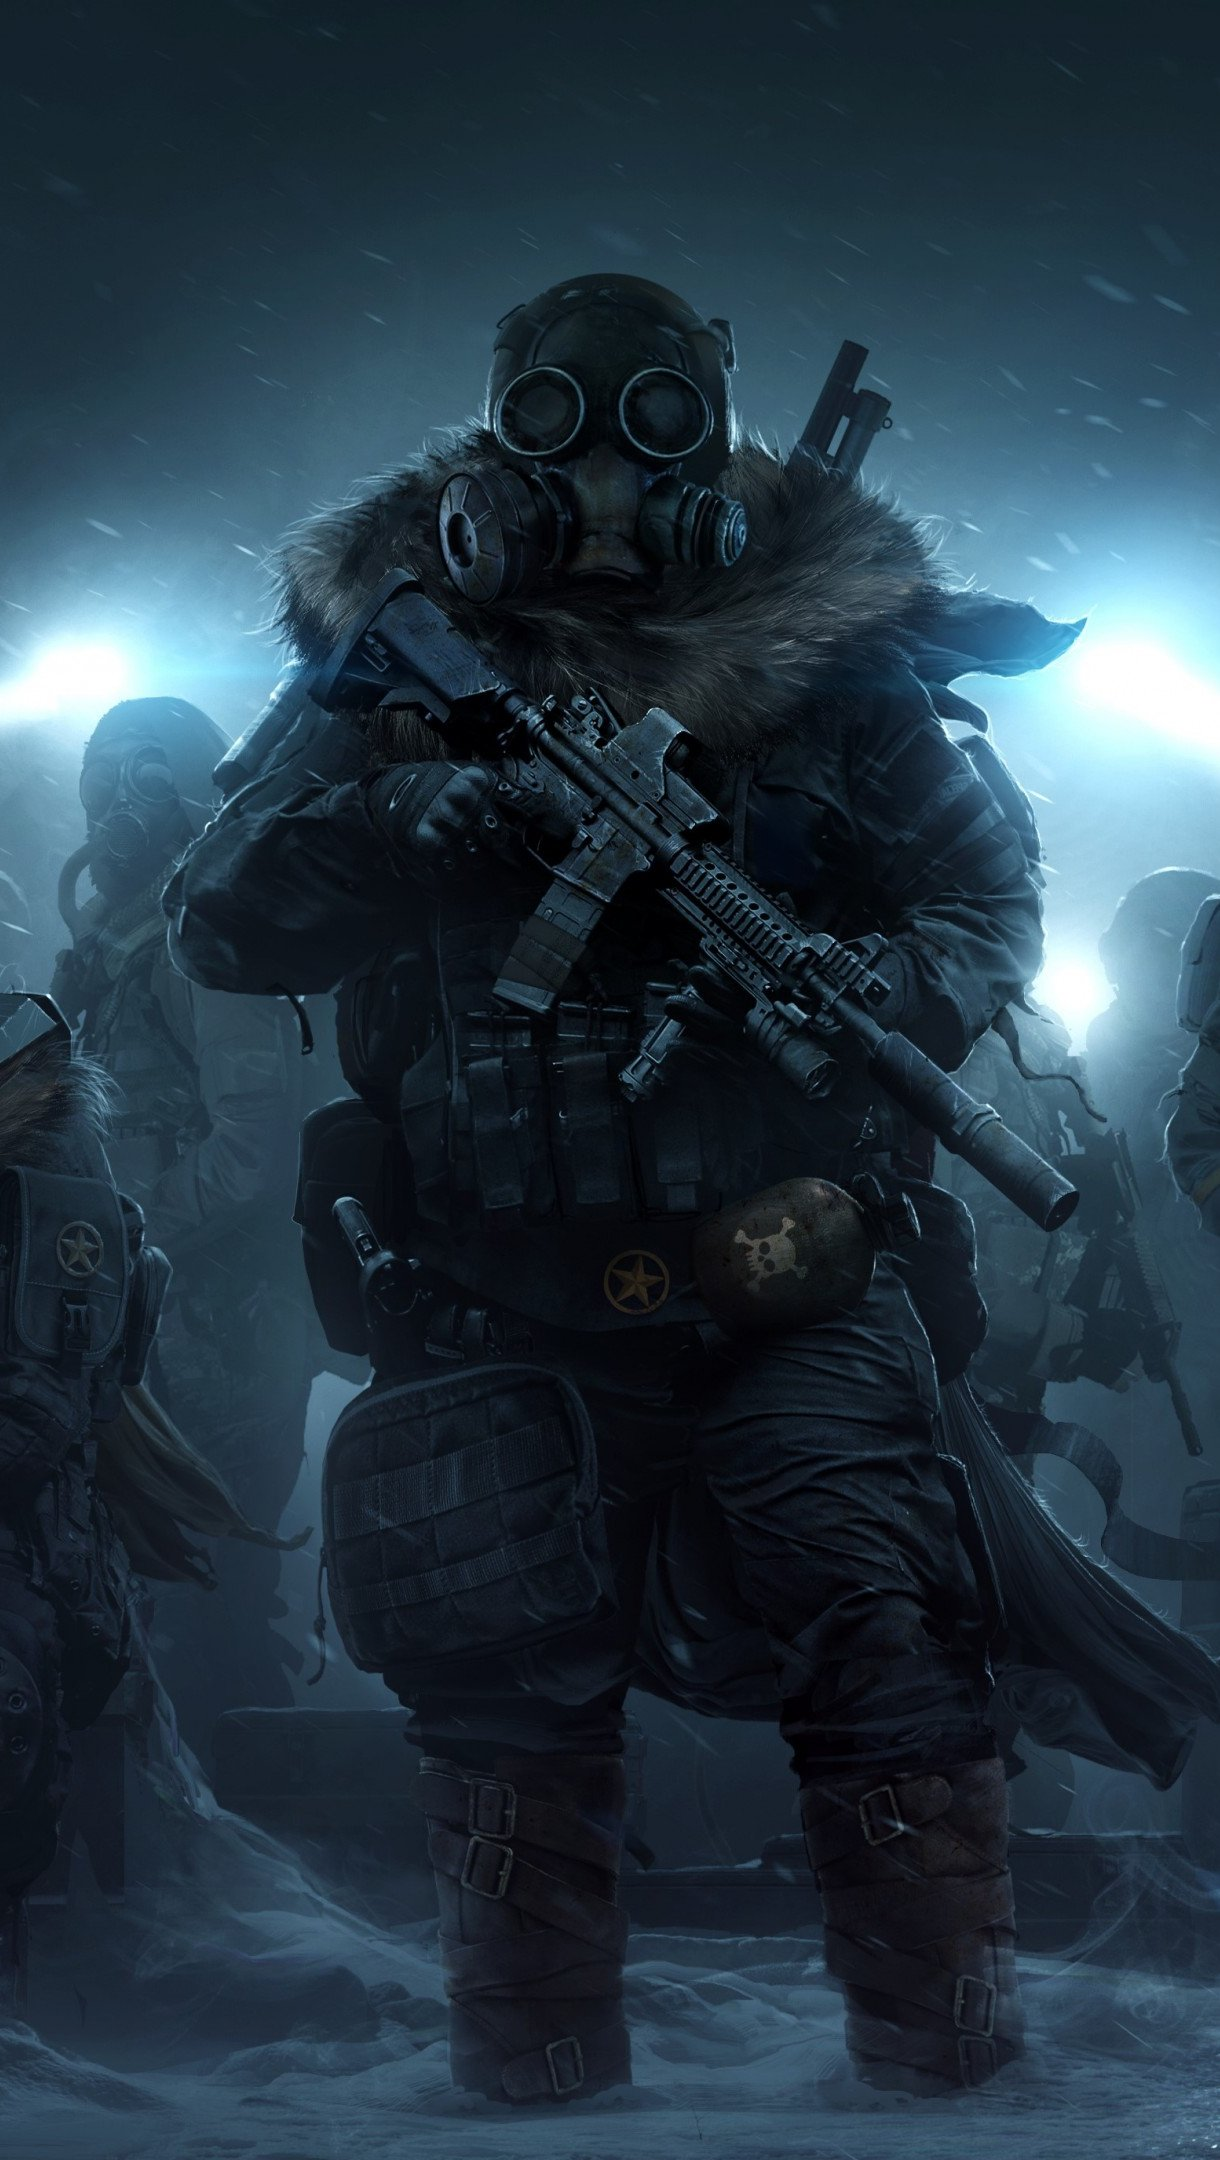 Wallpaper Artwork Wasteland 3 Vertical